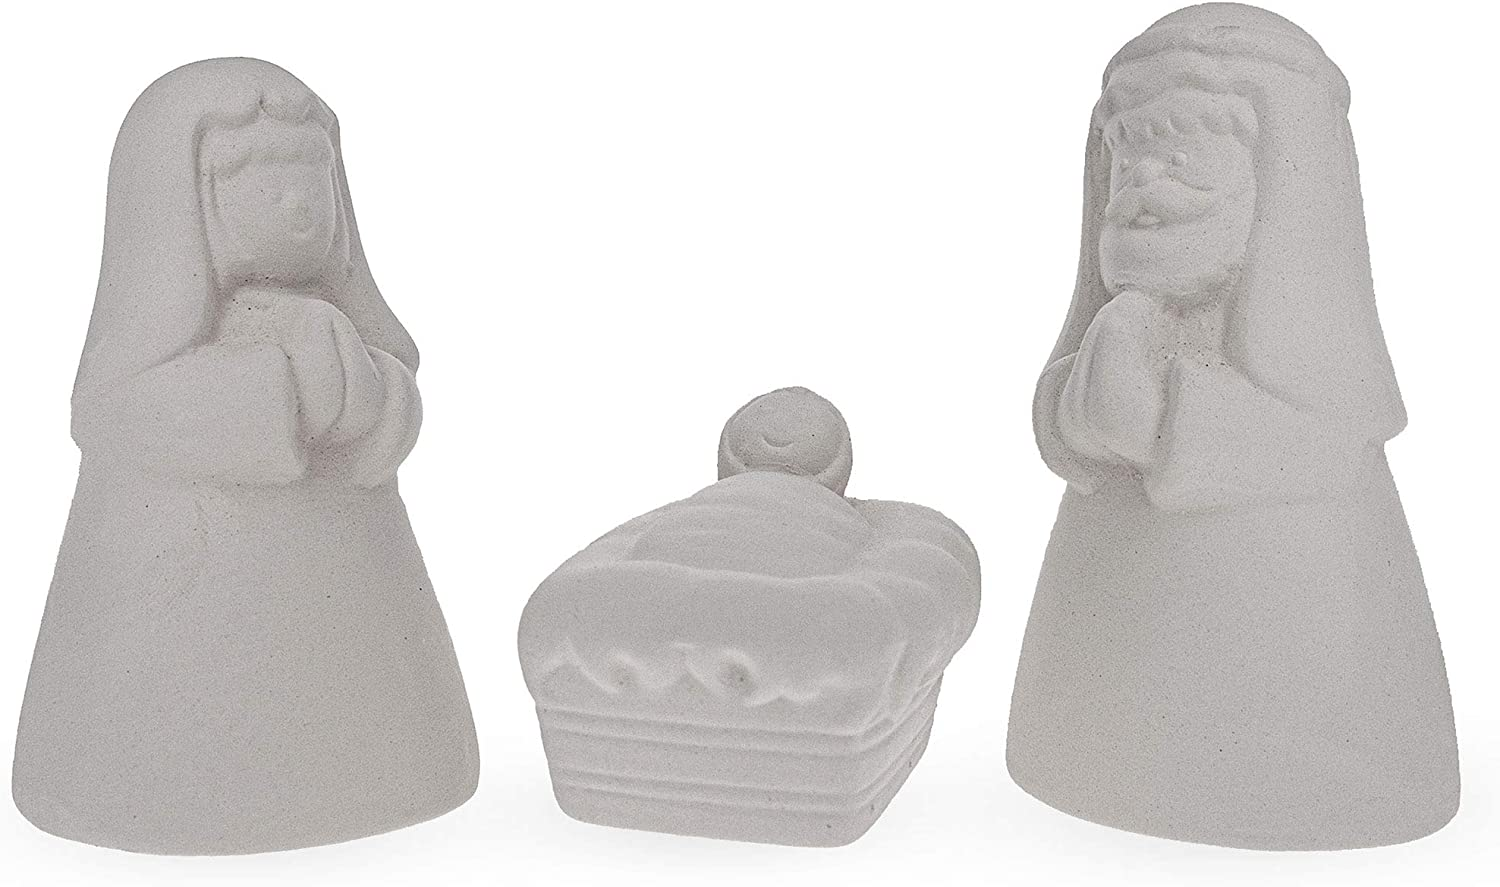 Blank Unpainted Ceramic OFFicial store Nativity Scene Christmas I Don't miss the campaign 3.3 Figurines